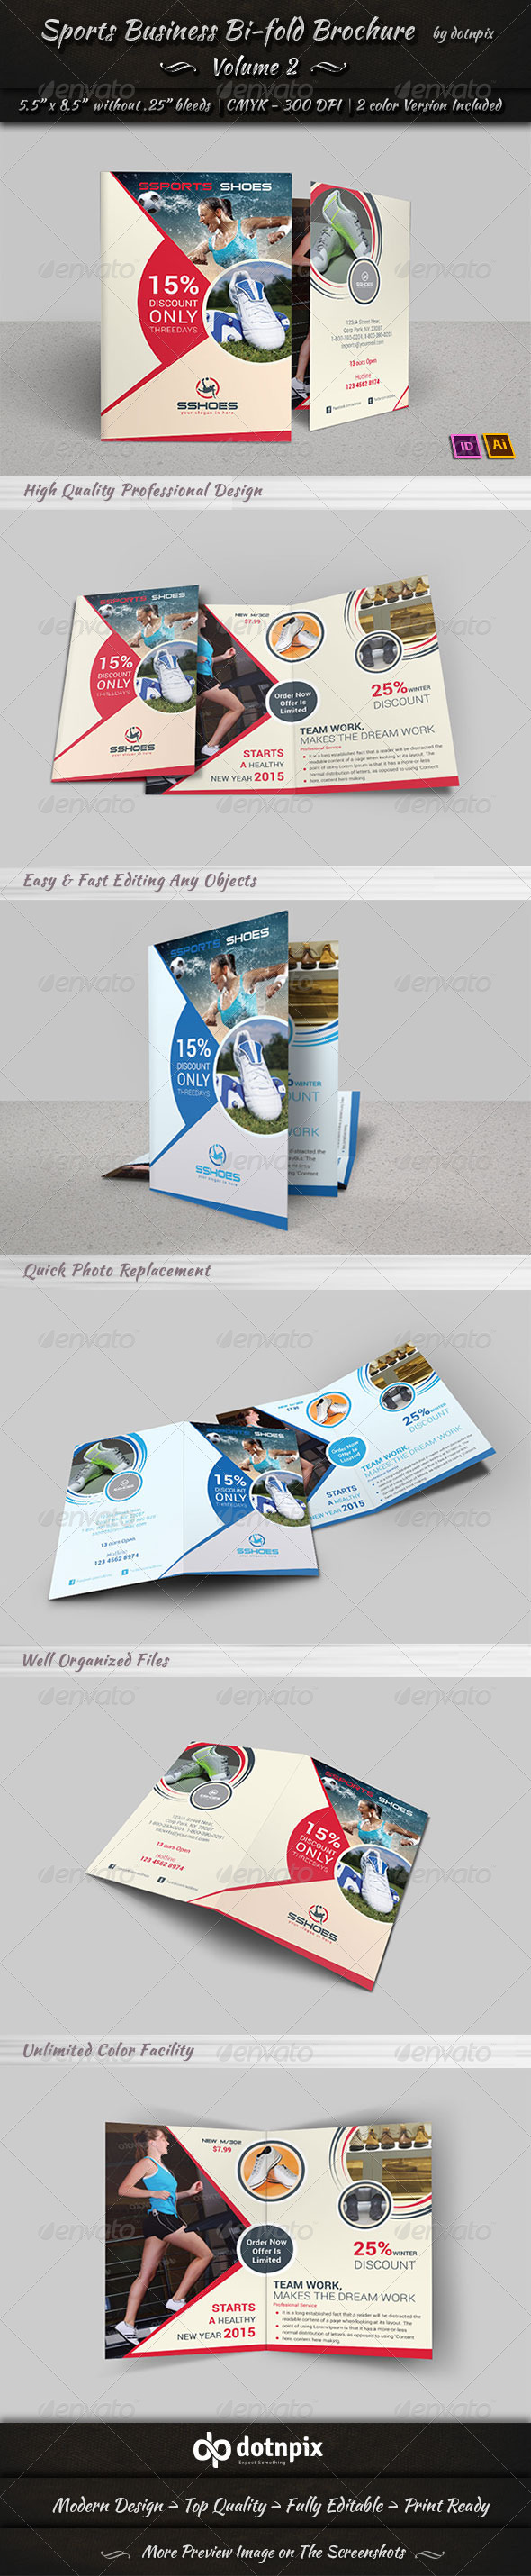 GraphicRiver Sports Business Bi-Fold Brochure Volume 2 6810083